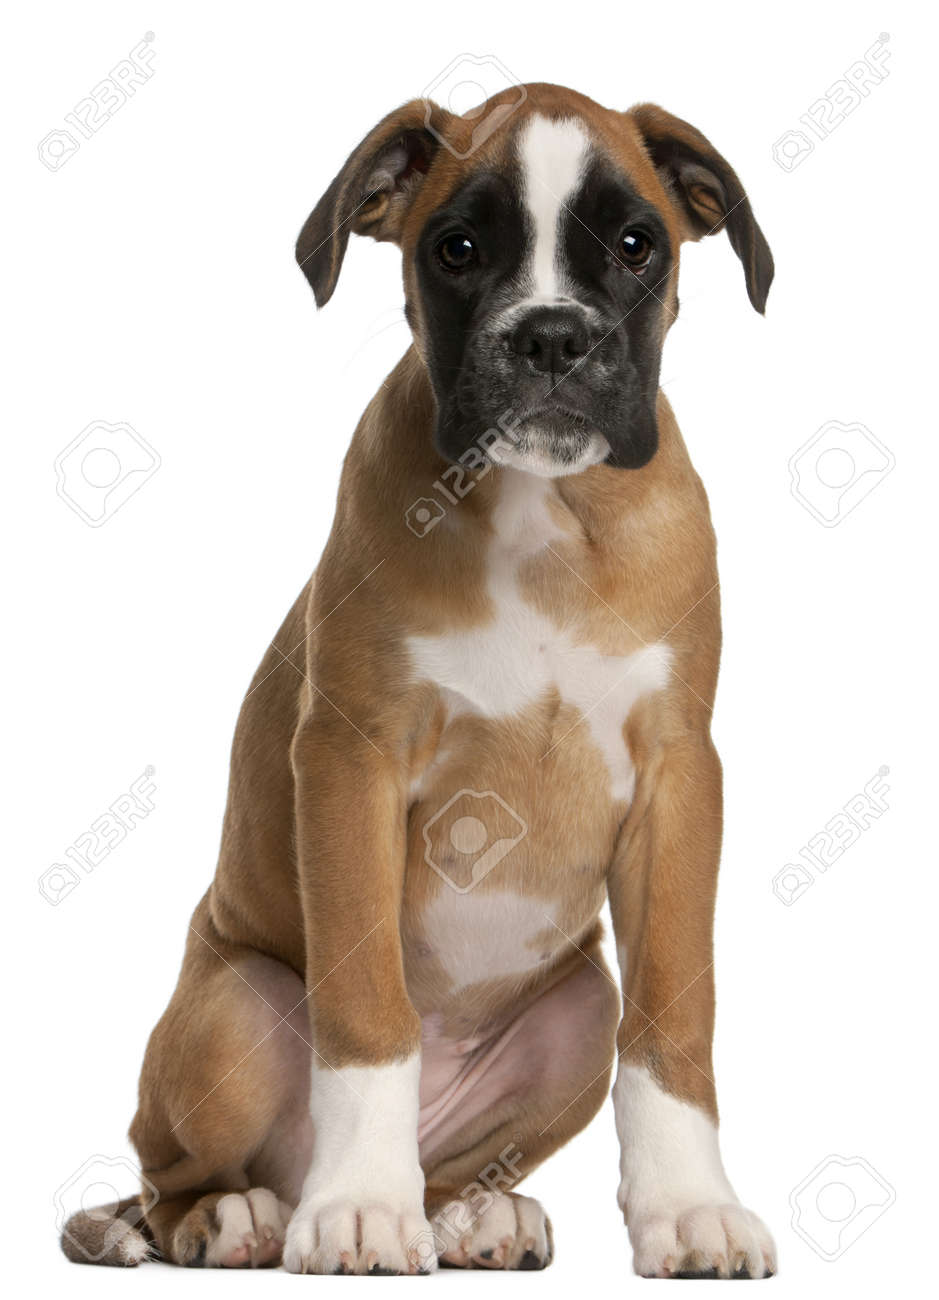 boxer puppy 3 months old sitting in front of white background